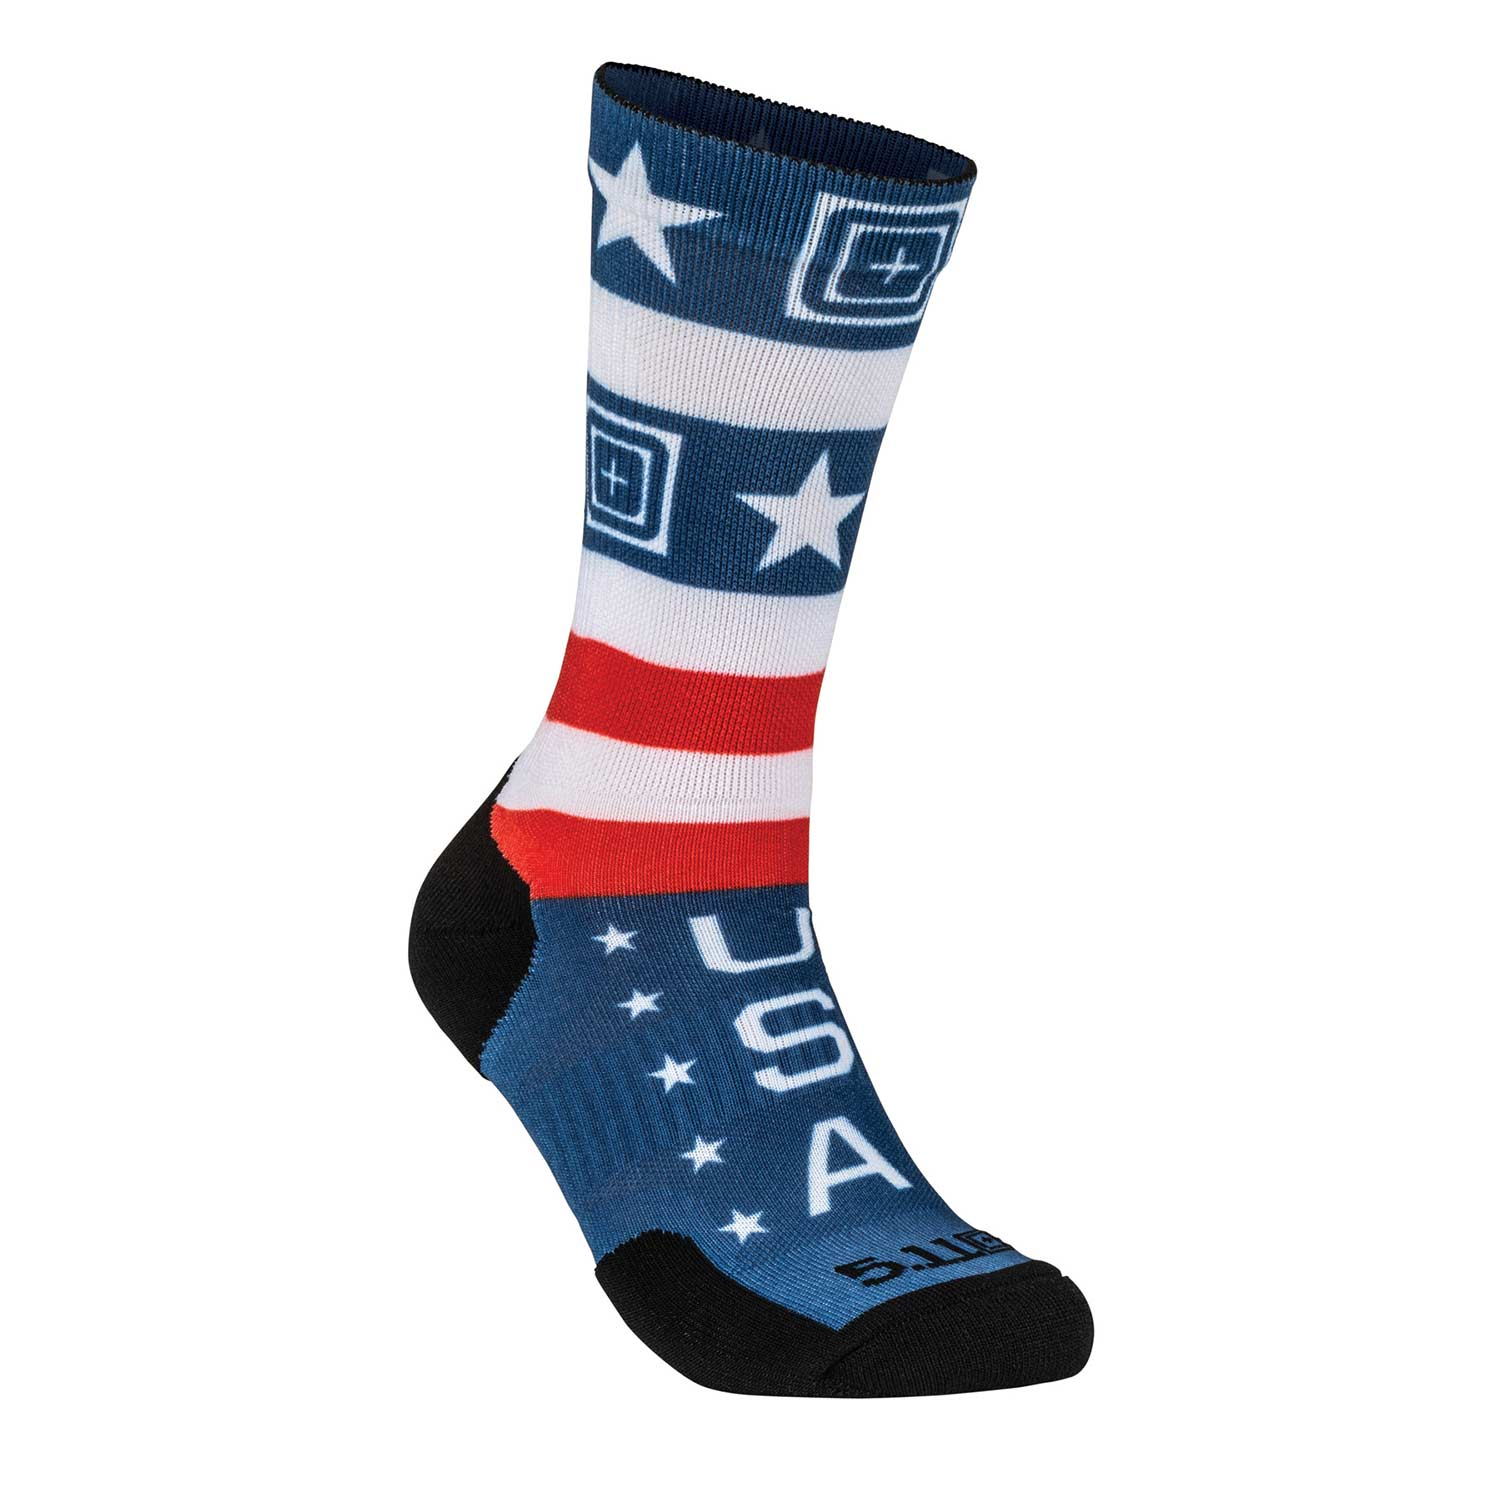 5.11 Sock and Awe American Gladiator Crew Sock